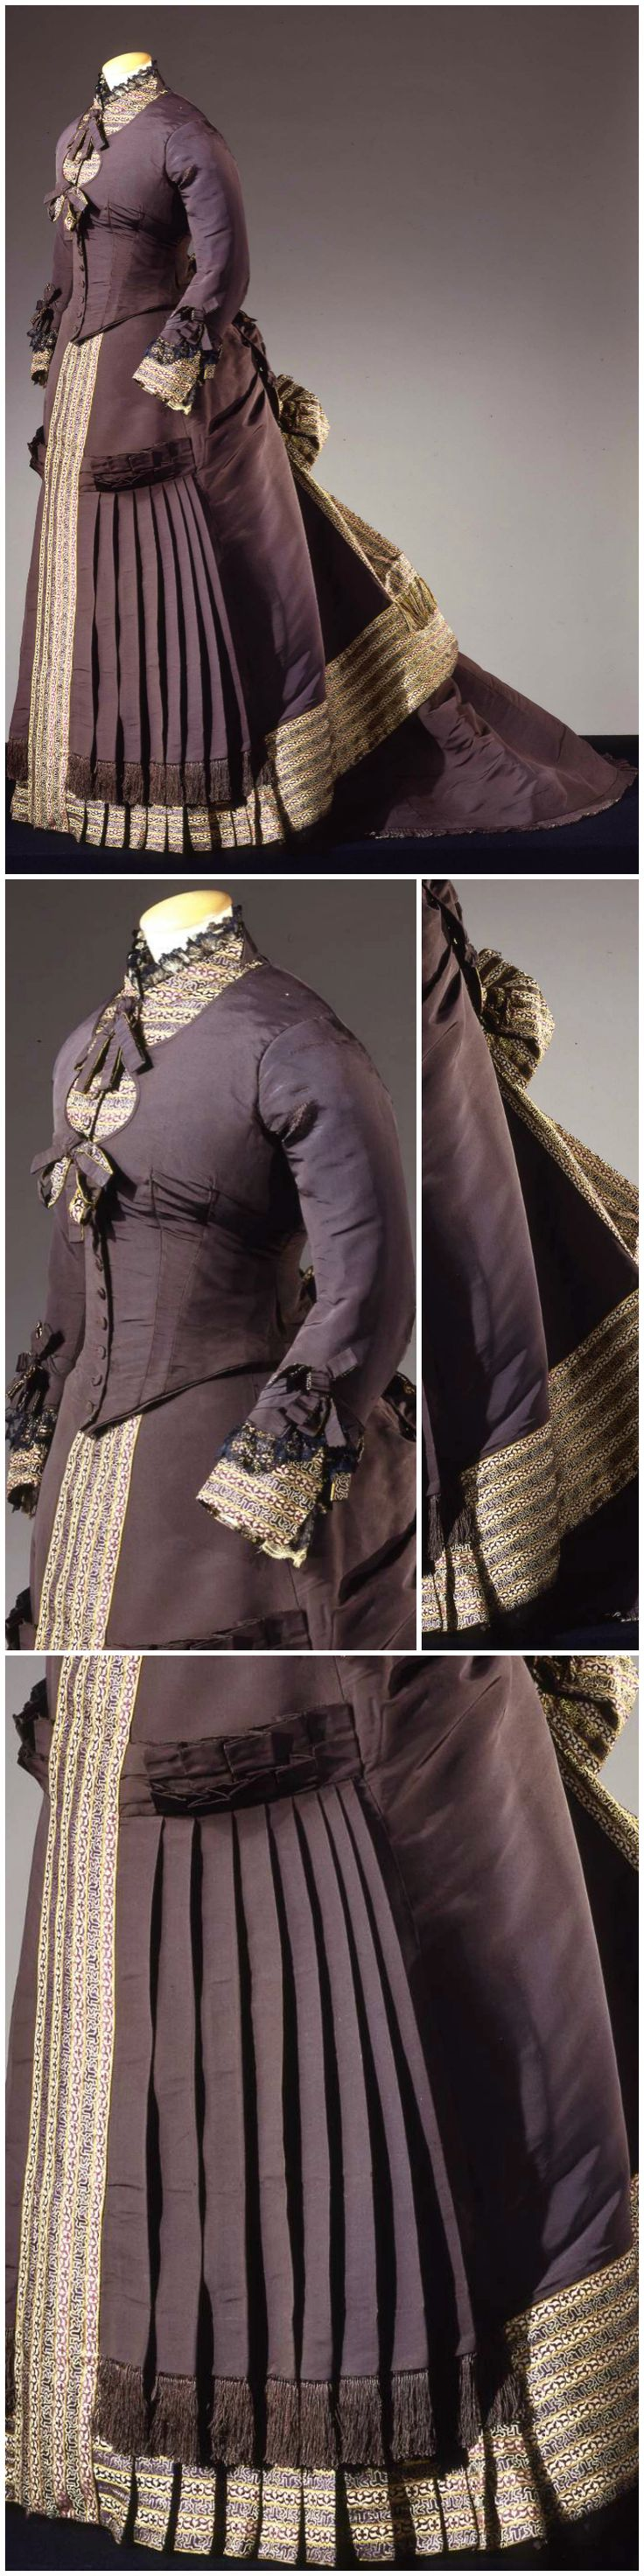 Dress in two parts, by Atelier Worth, Paris, c. 1878, at the Pitti Palace Costume Gallery. Via Europeana Fashion.